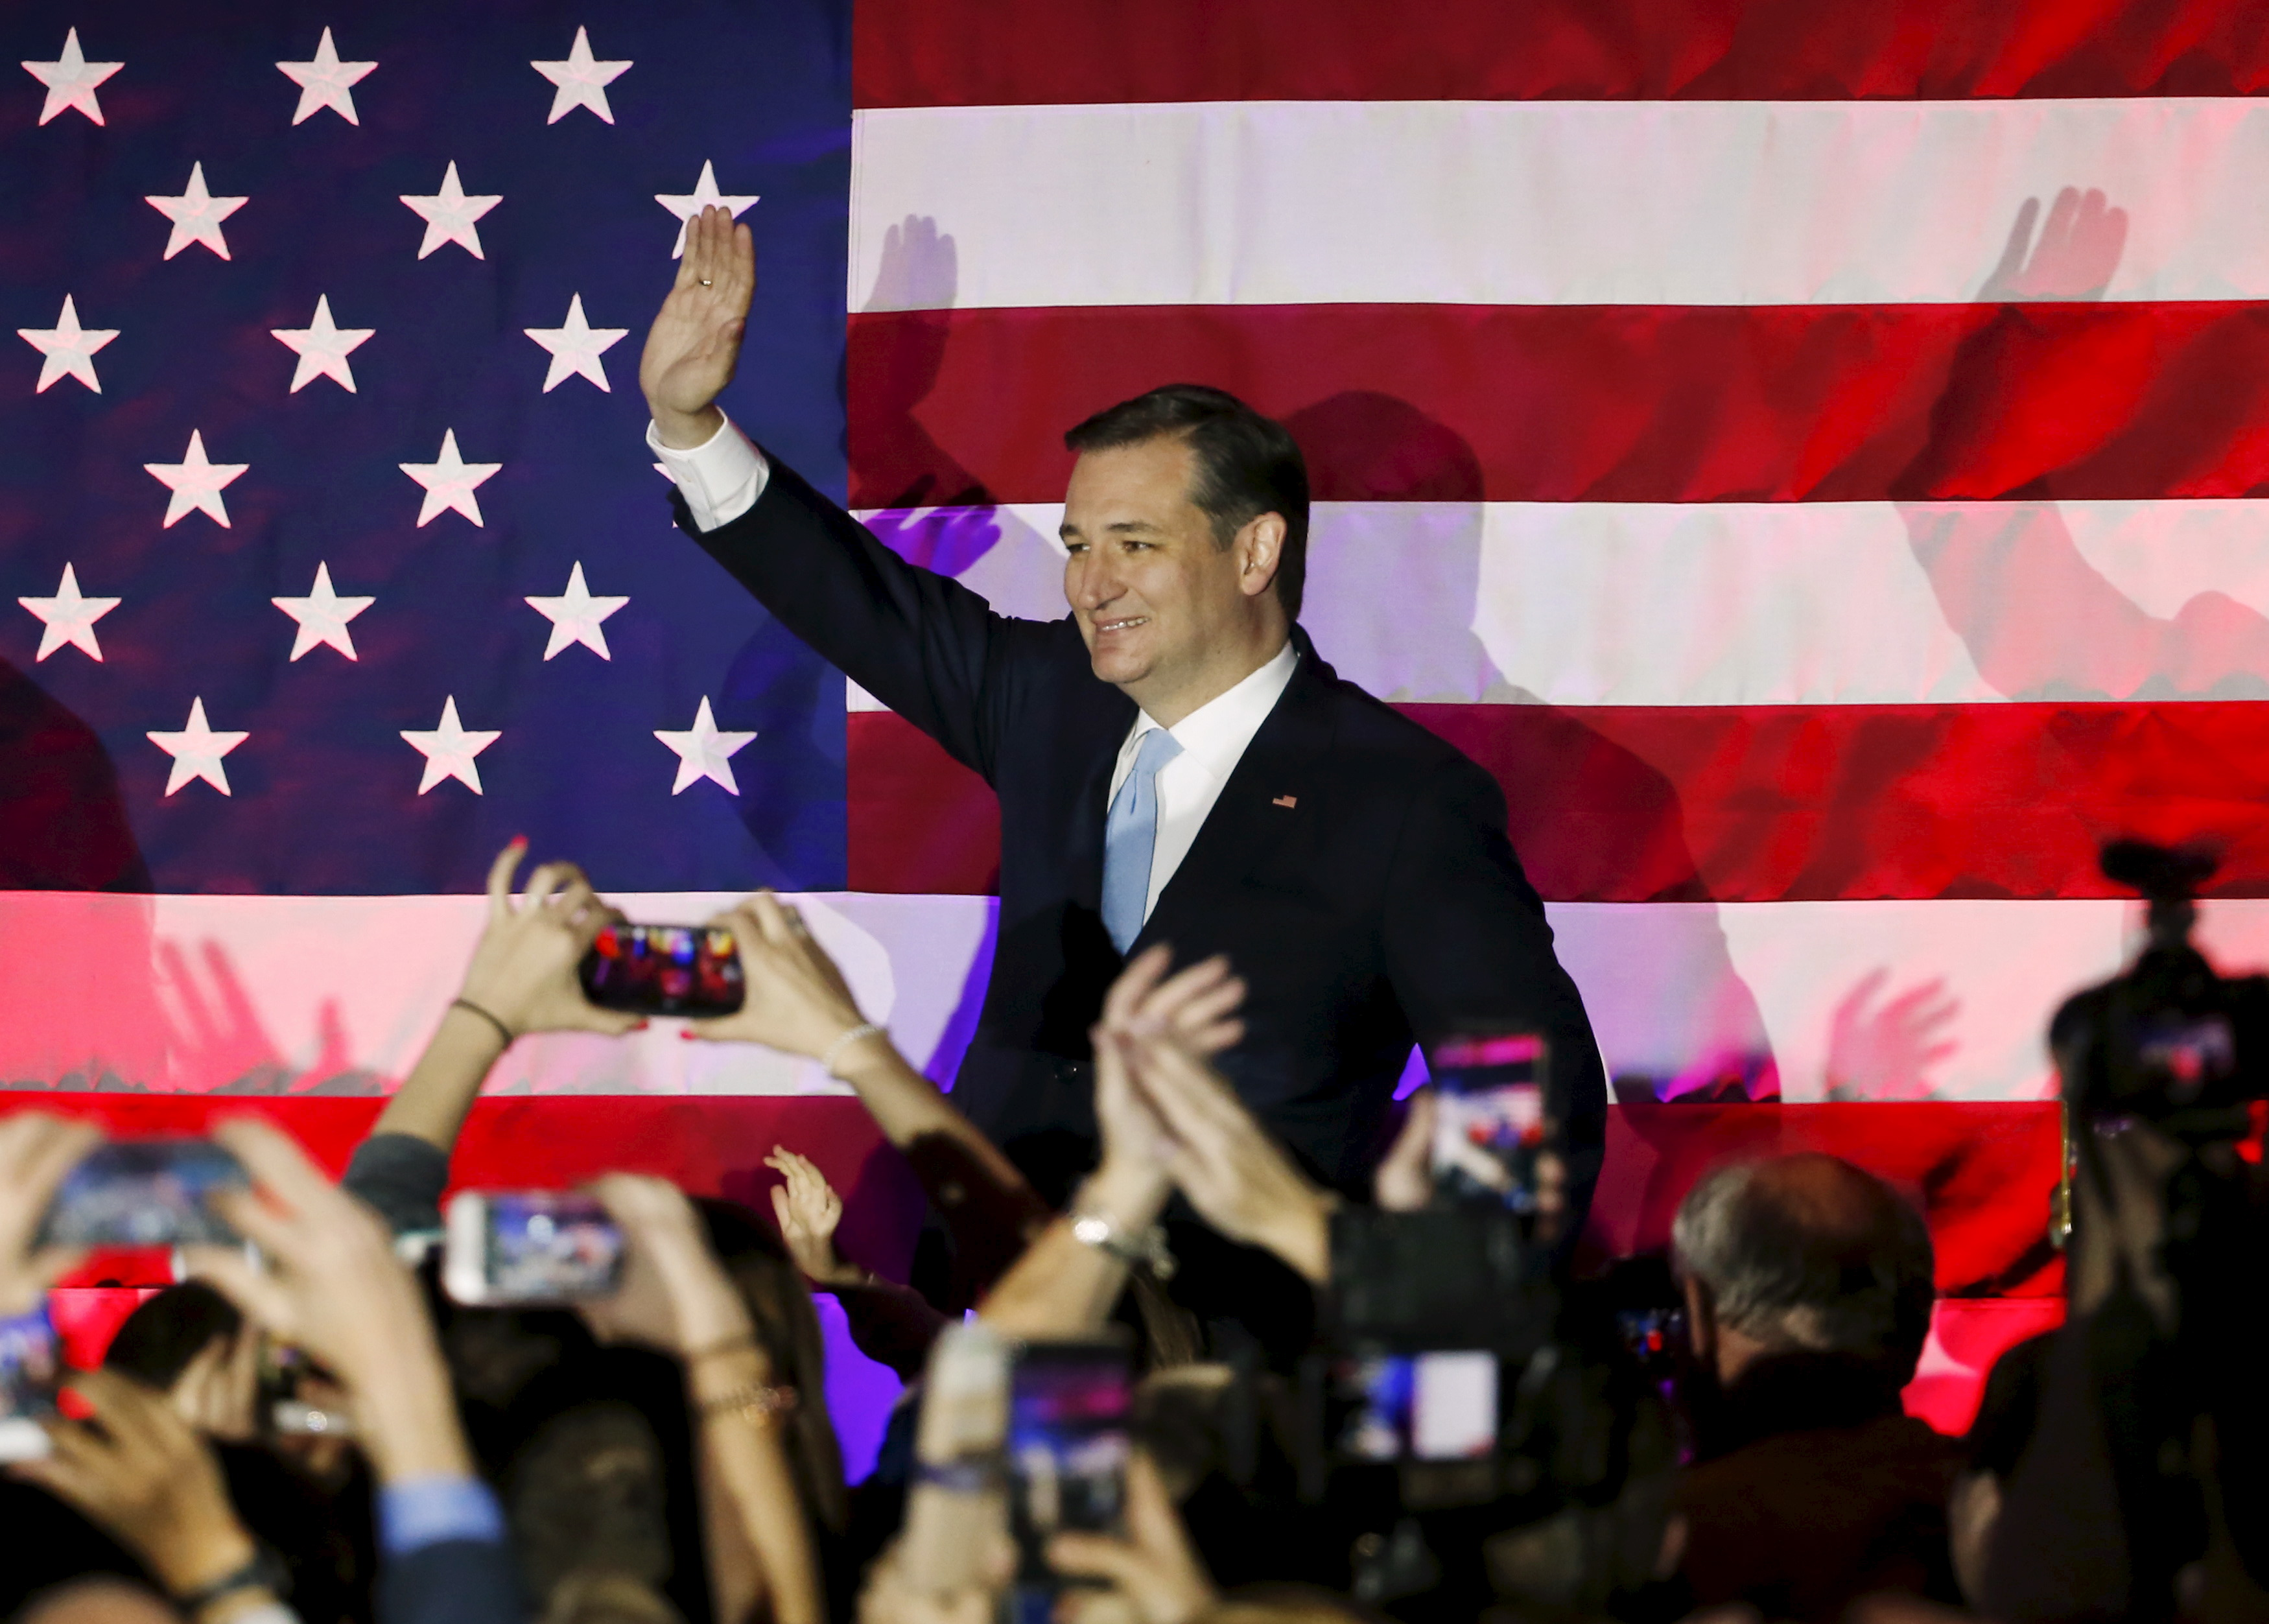 U.S. Republican presidential candidate Ted Cruz arrives for a Wisconsin primary night rally at the American Serb Banquet Hall in Milwaukee, Wisc., April 5, 2016.